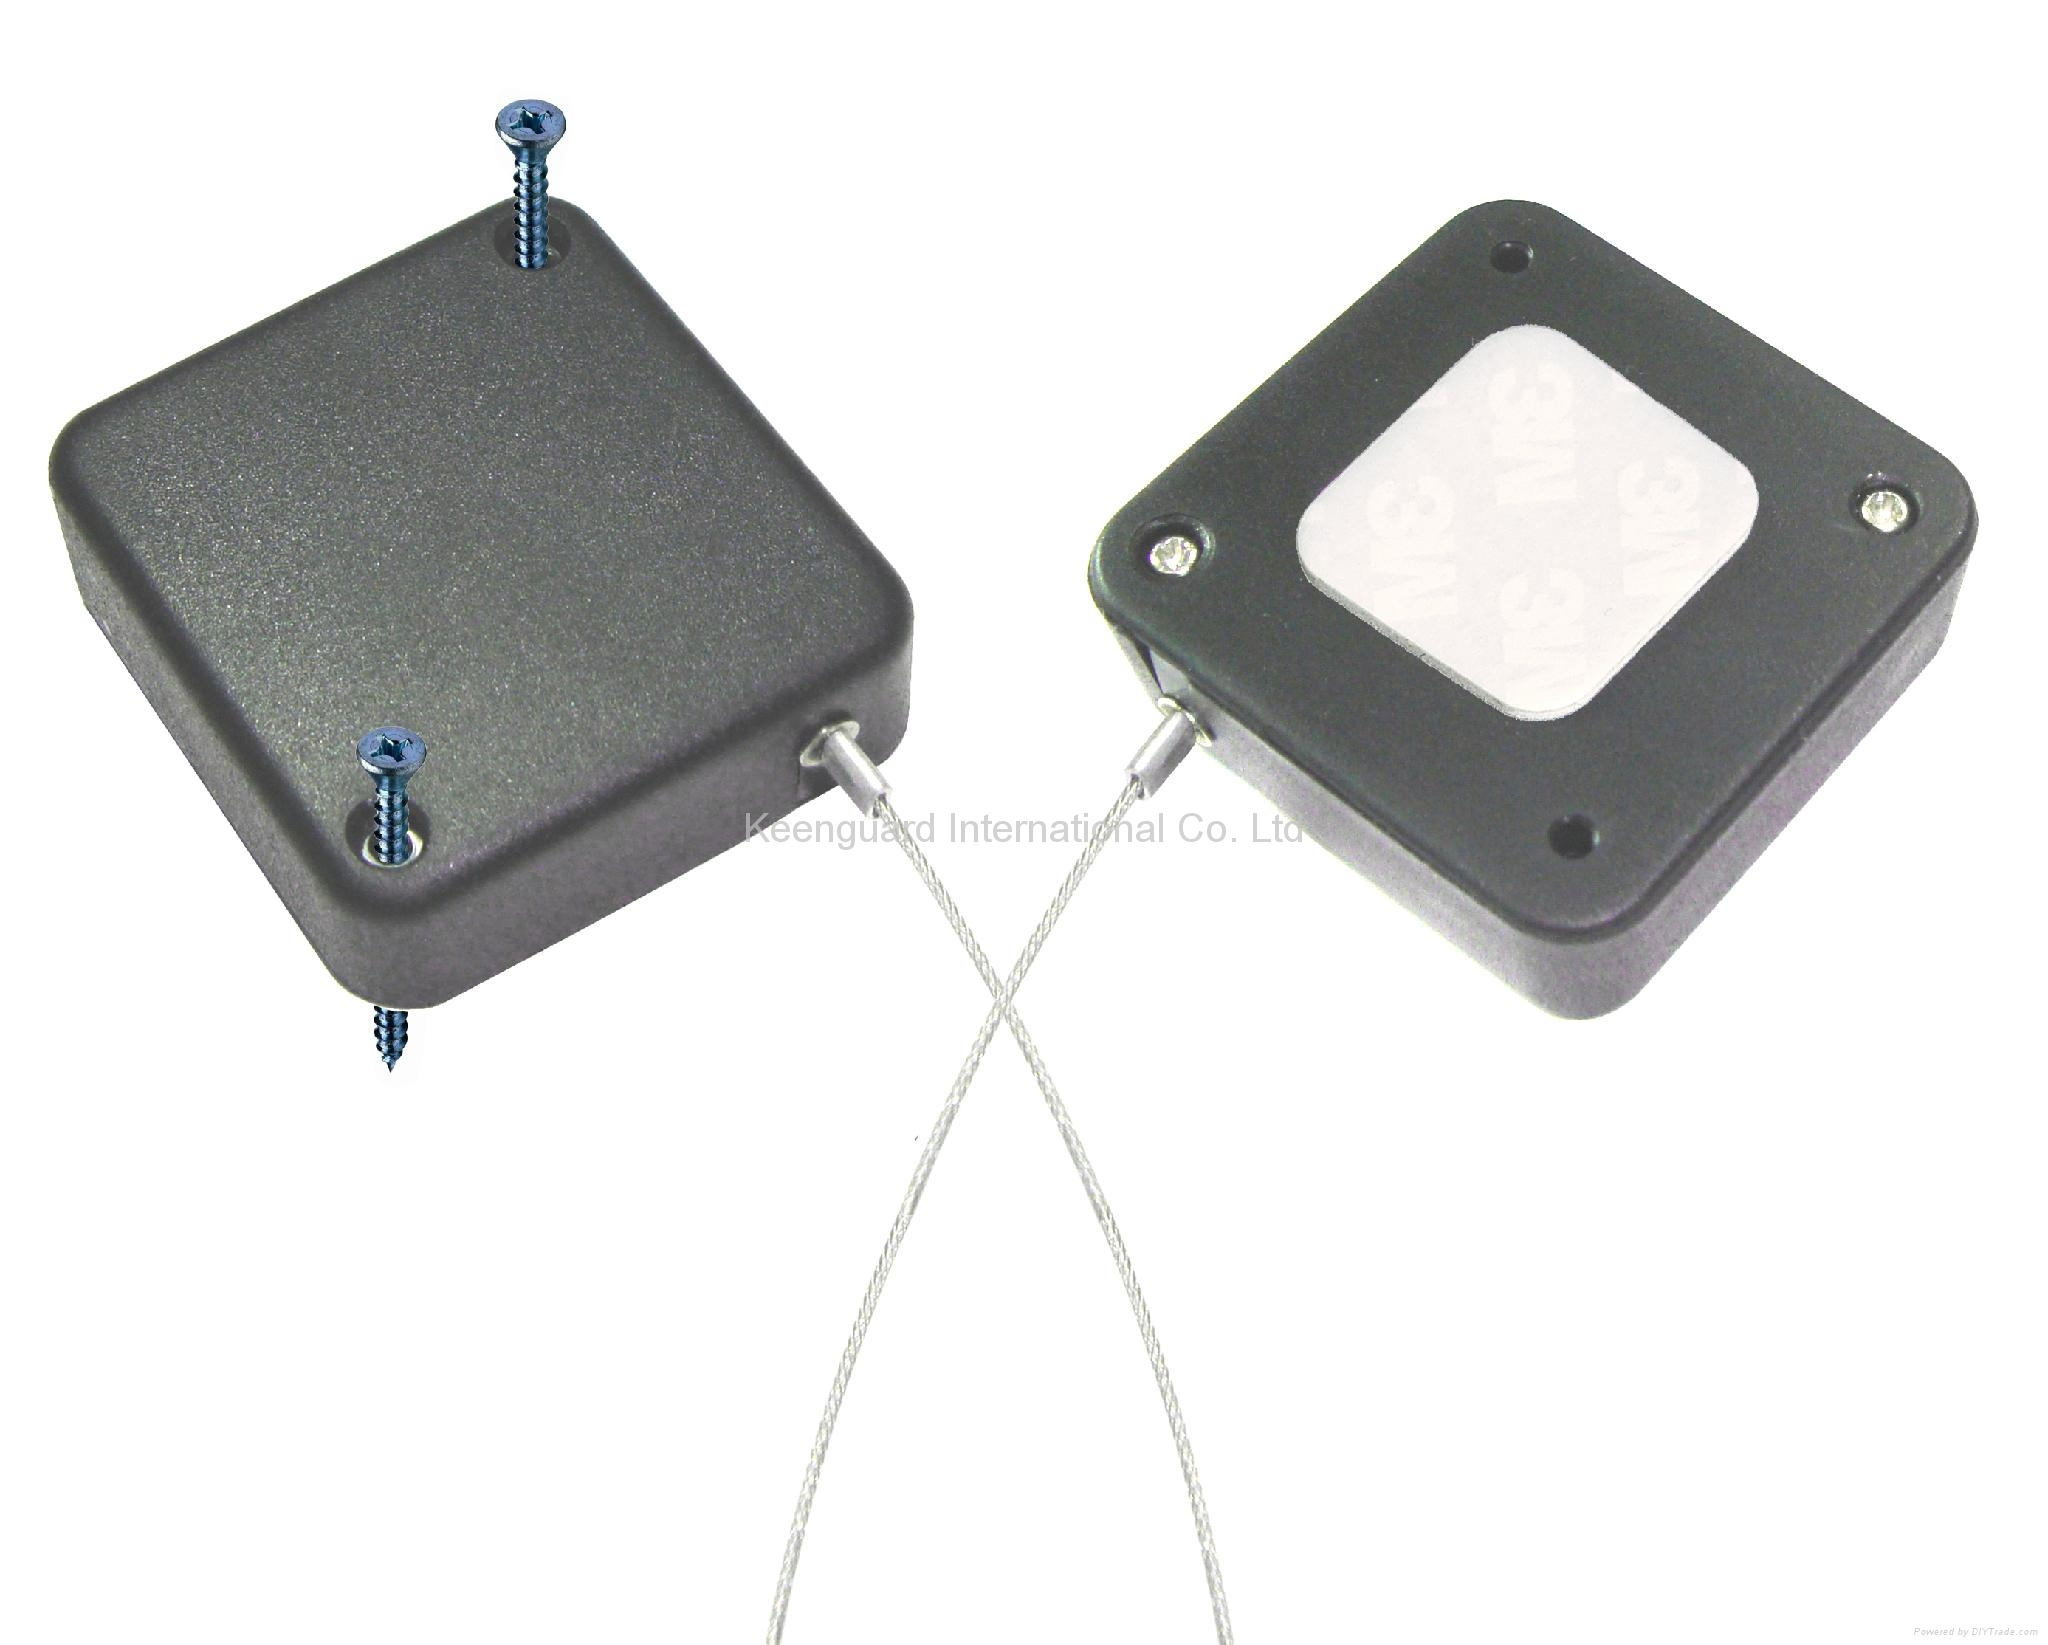 display cable tether